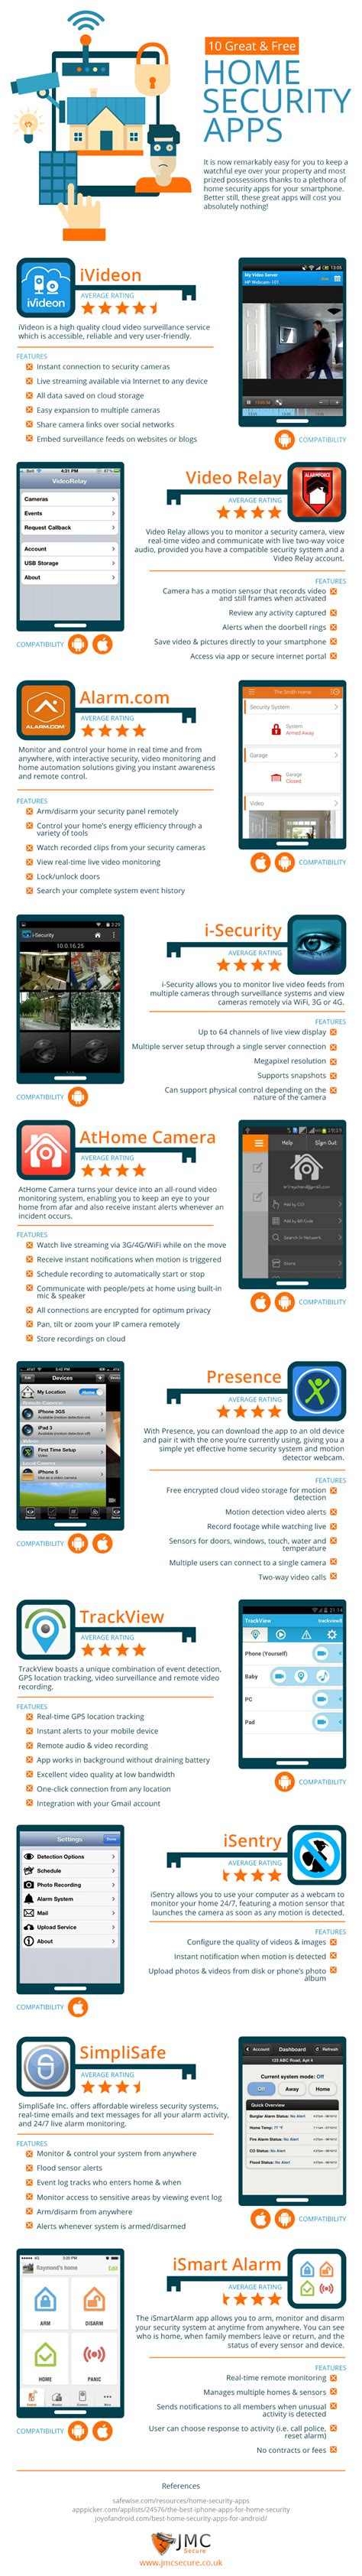 infographic top home security apps securitygem